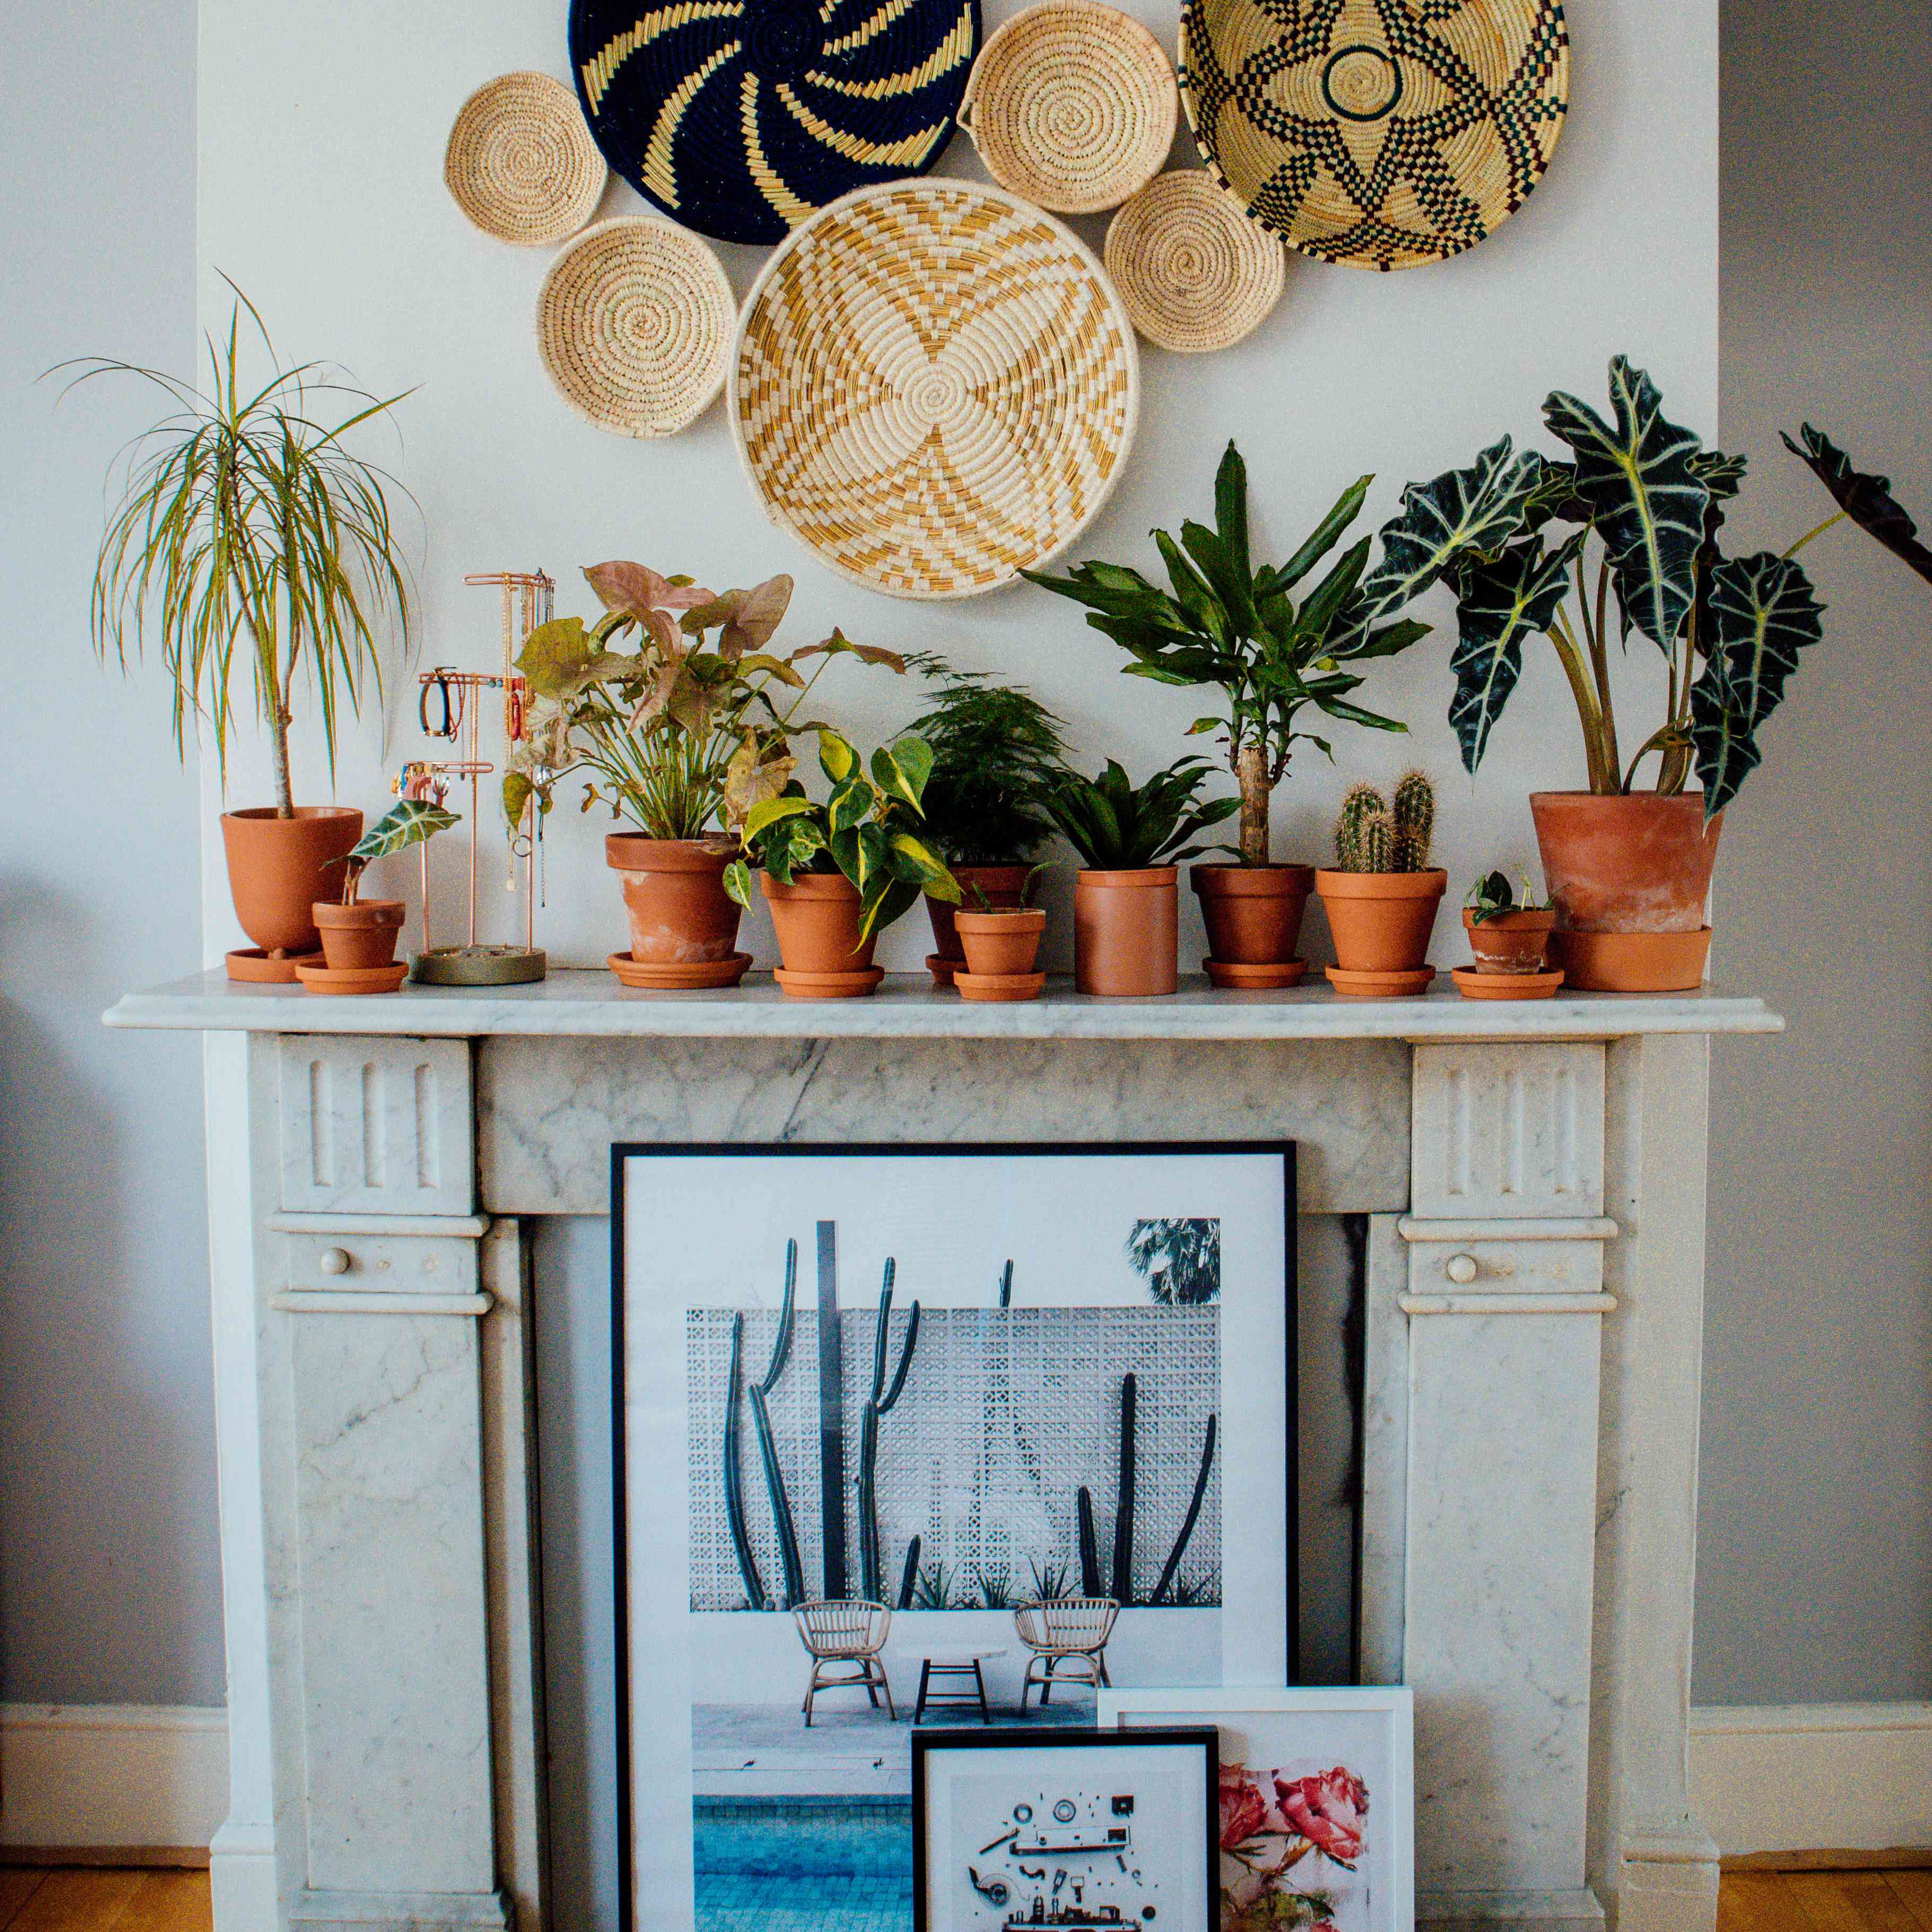 taylor fuller's mantle with plants and decor, plant shelfie